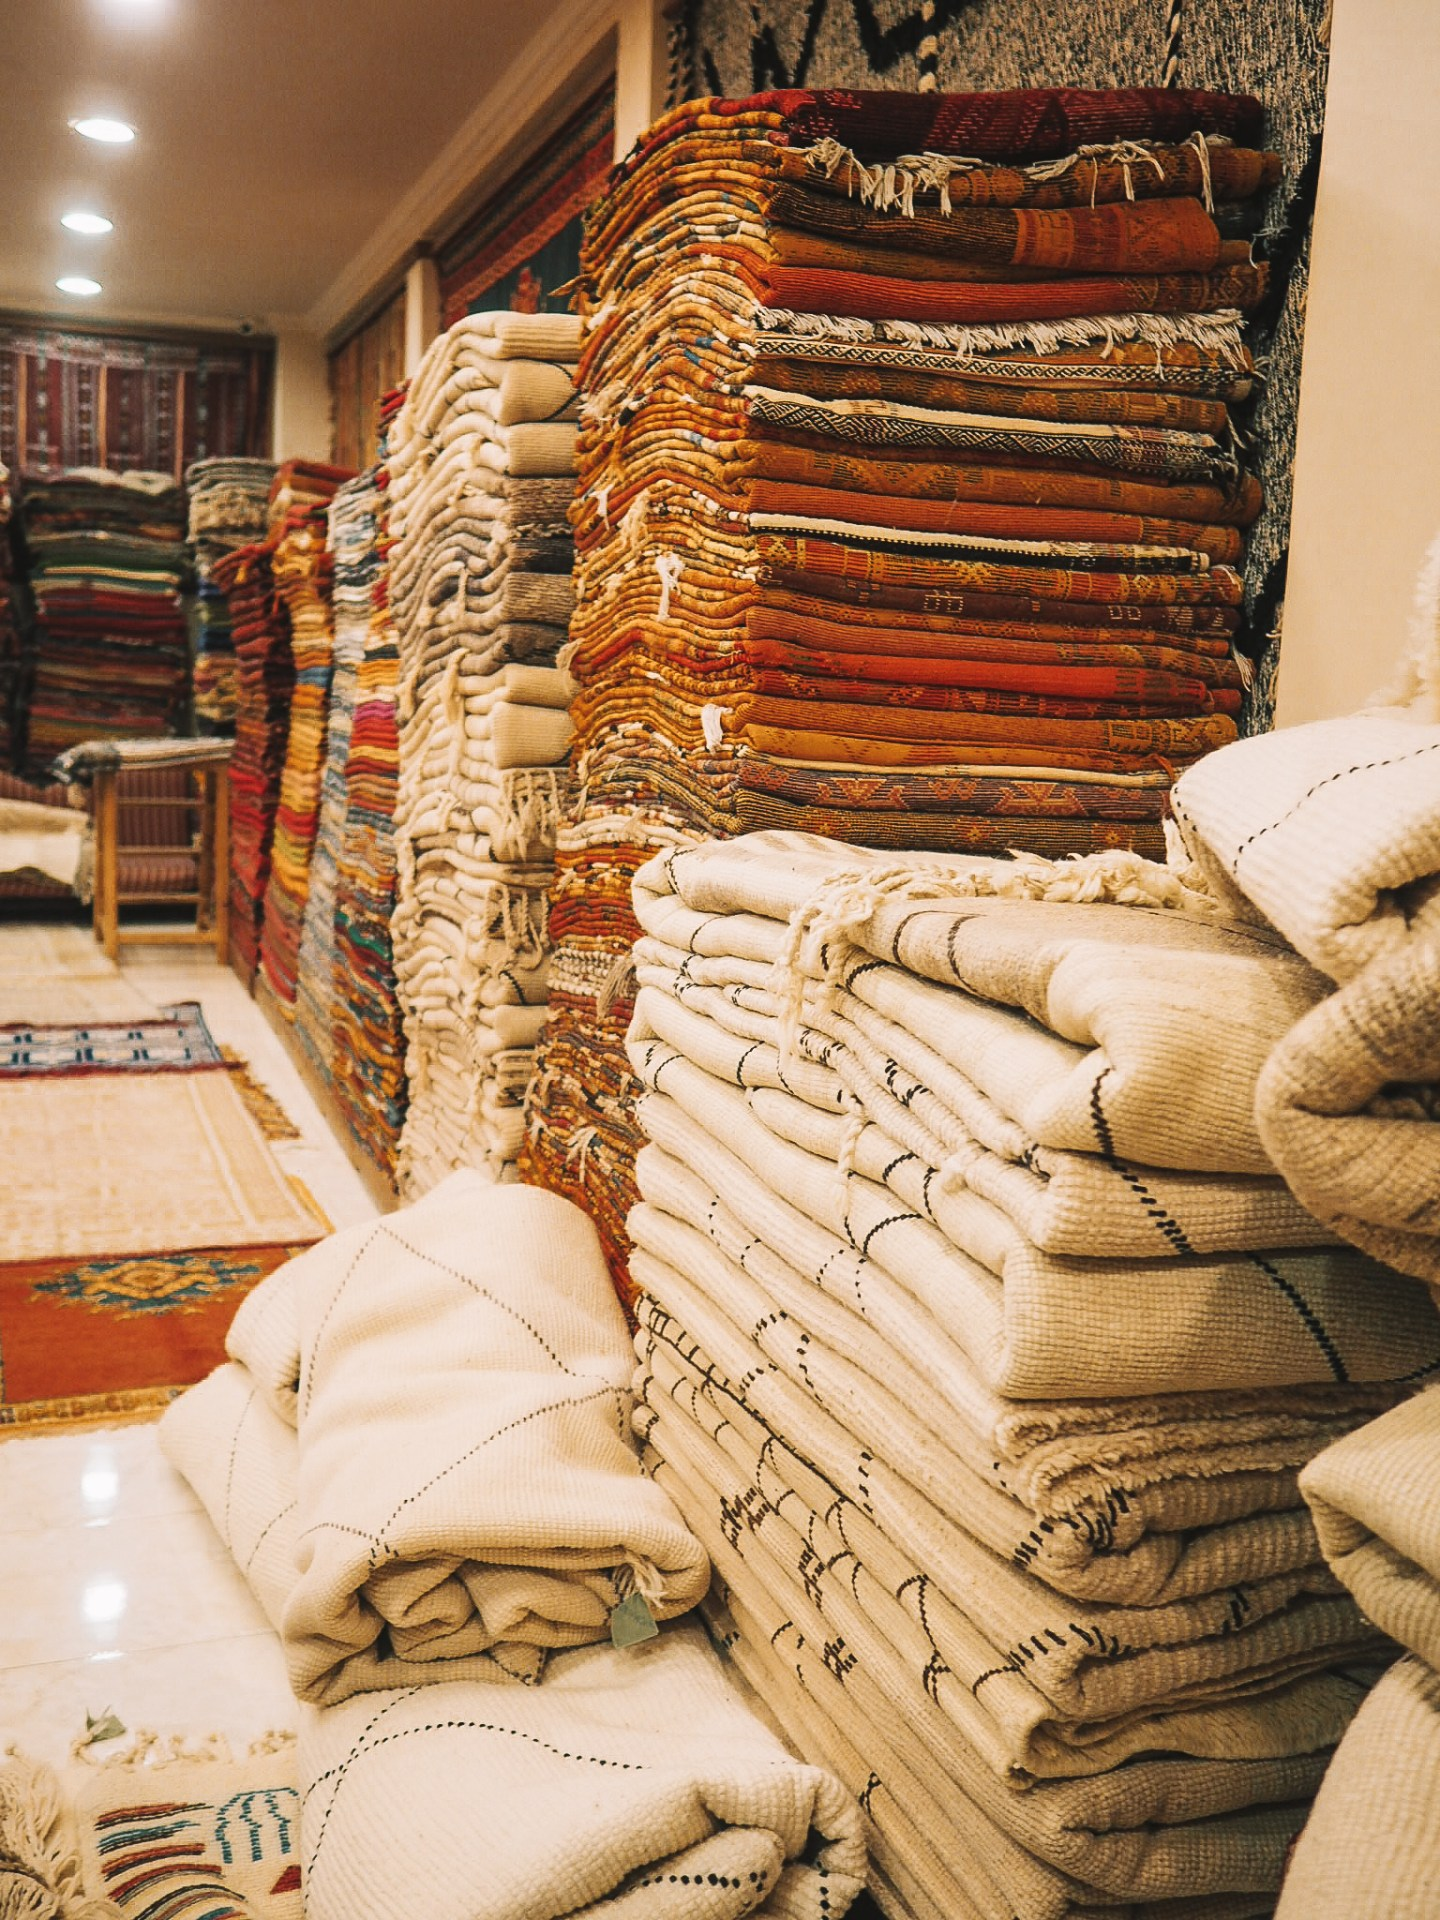 A Carpet Shop in Marrakesh